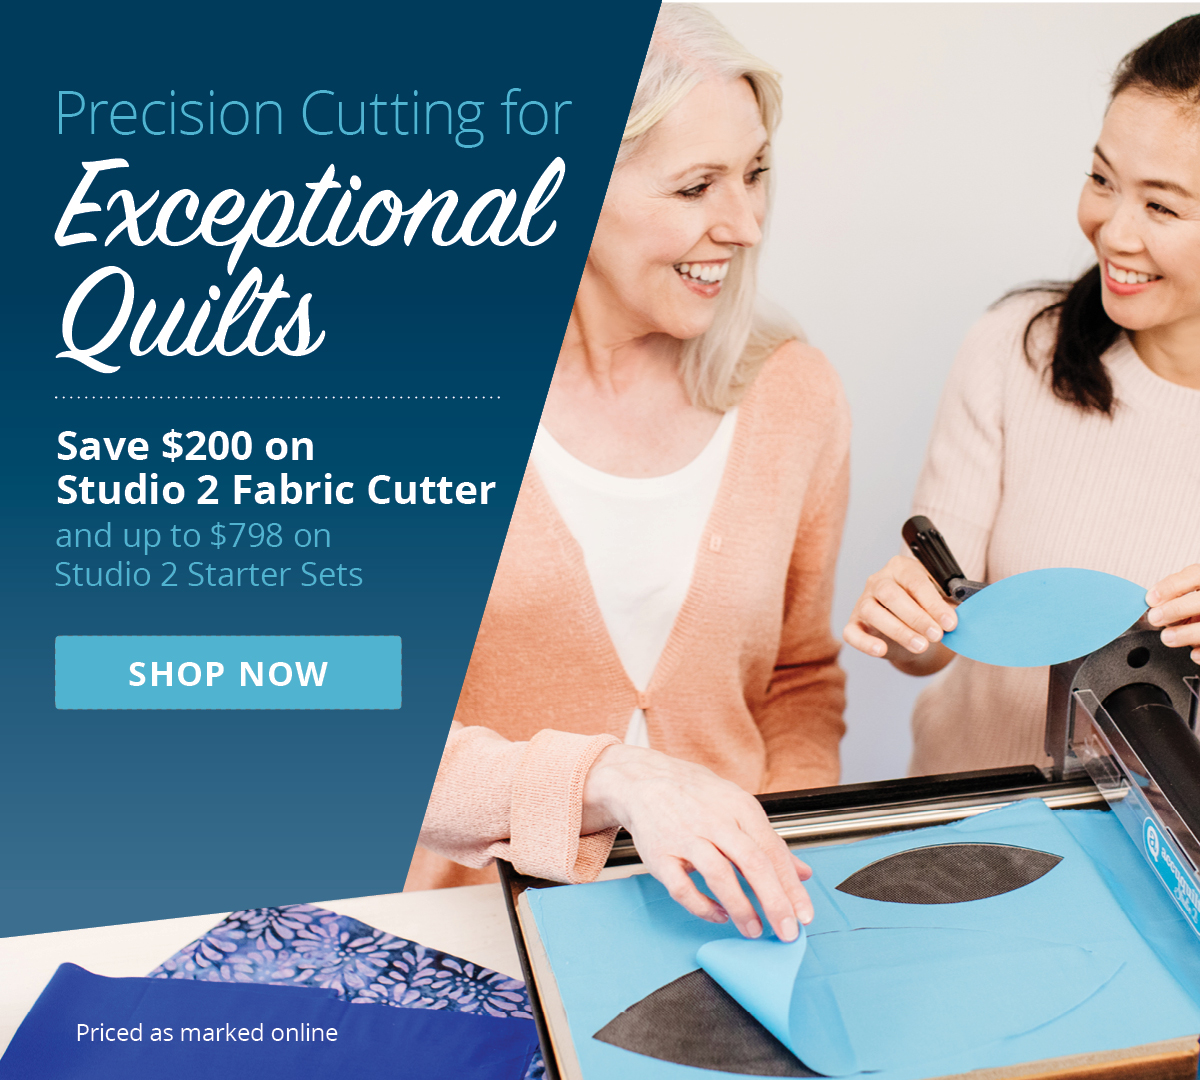 Precision Cutting for Exceptional Quilts | Save $200 on Studio 2